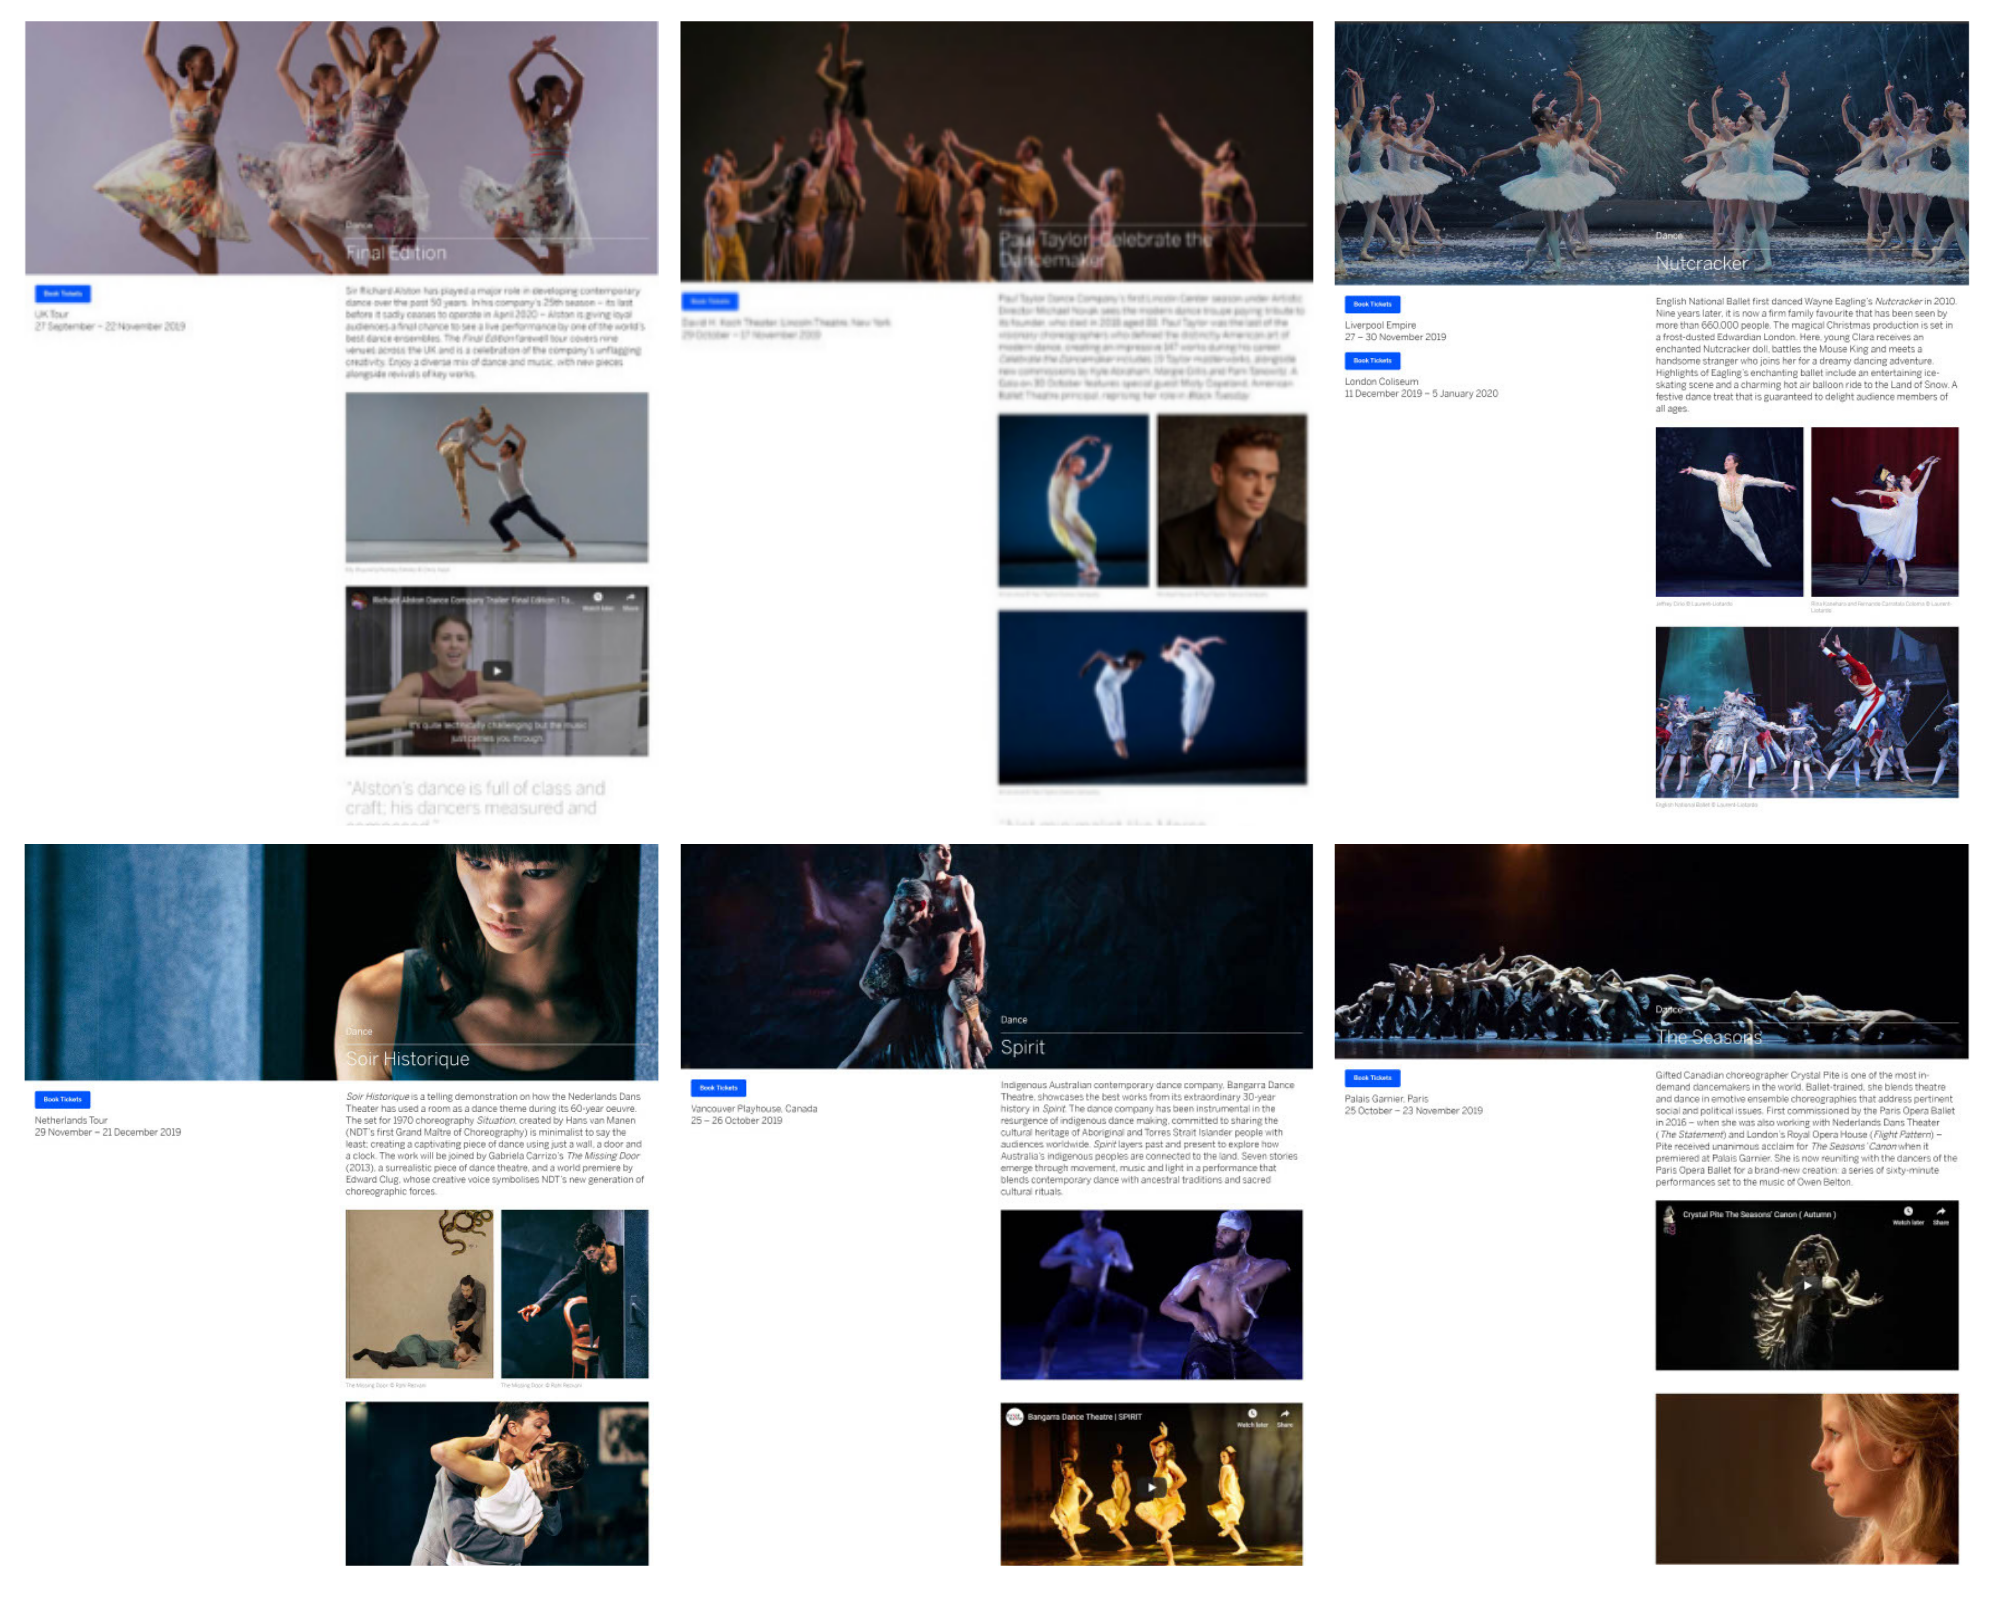 A collage of pages from the dance section of Bon Vivant, an exclusive lifestyle magazine for American Express Centurion members. The dance section content is by dance writer Georgina Butler.